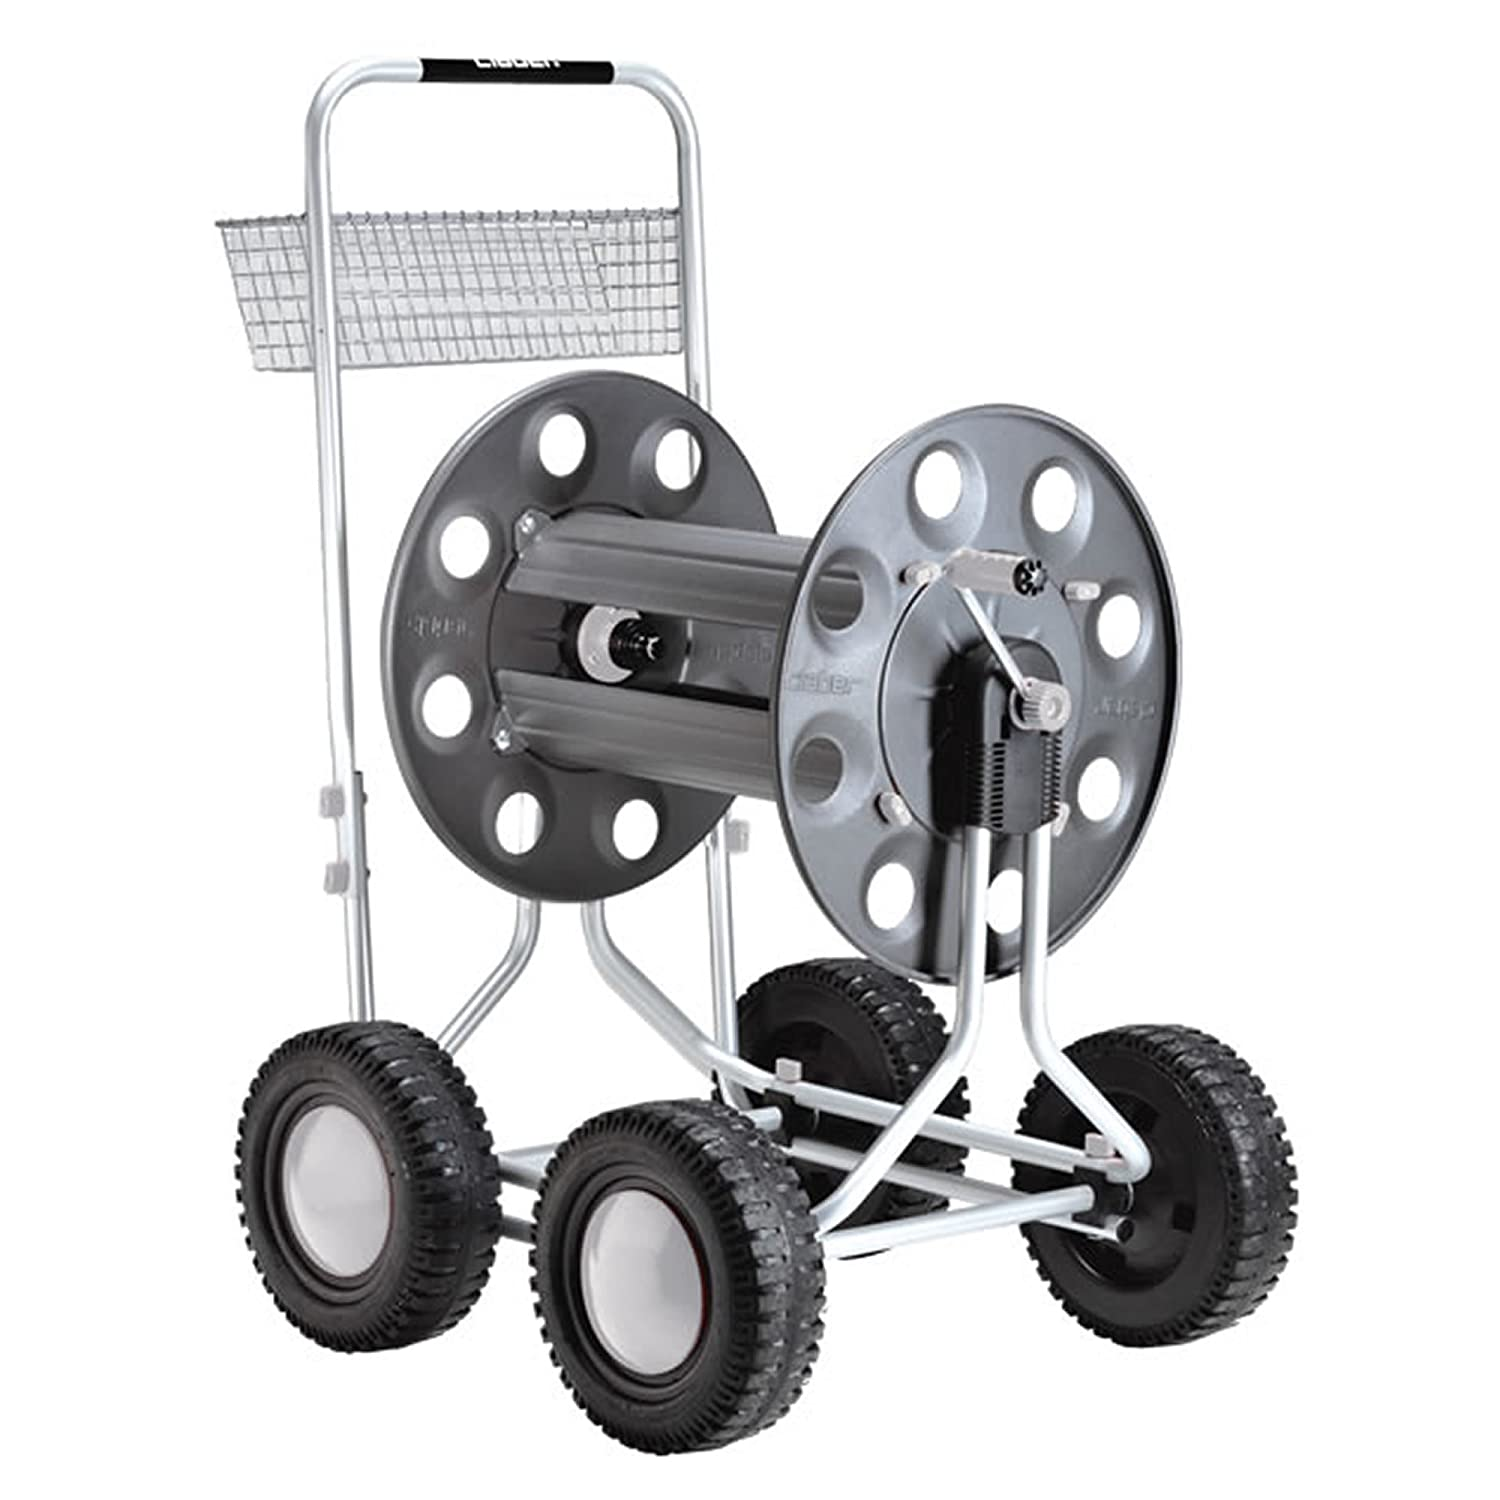 Claber D89000000 – Hose Trolley with 4 Wheels, Jumbo